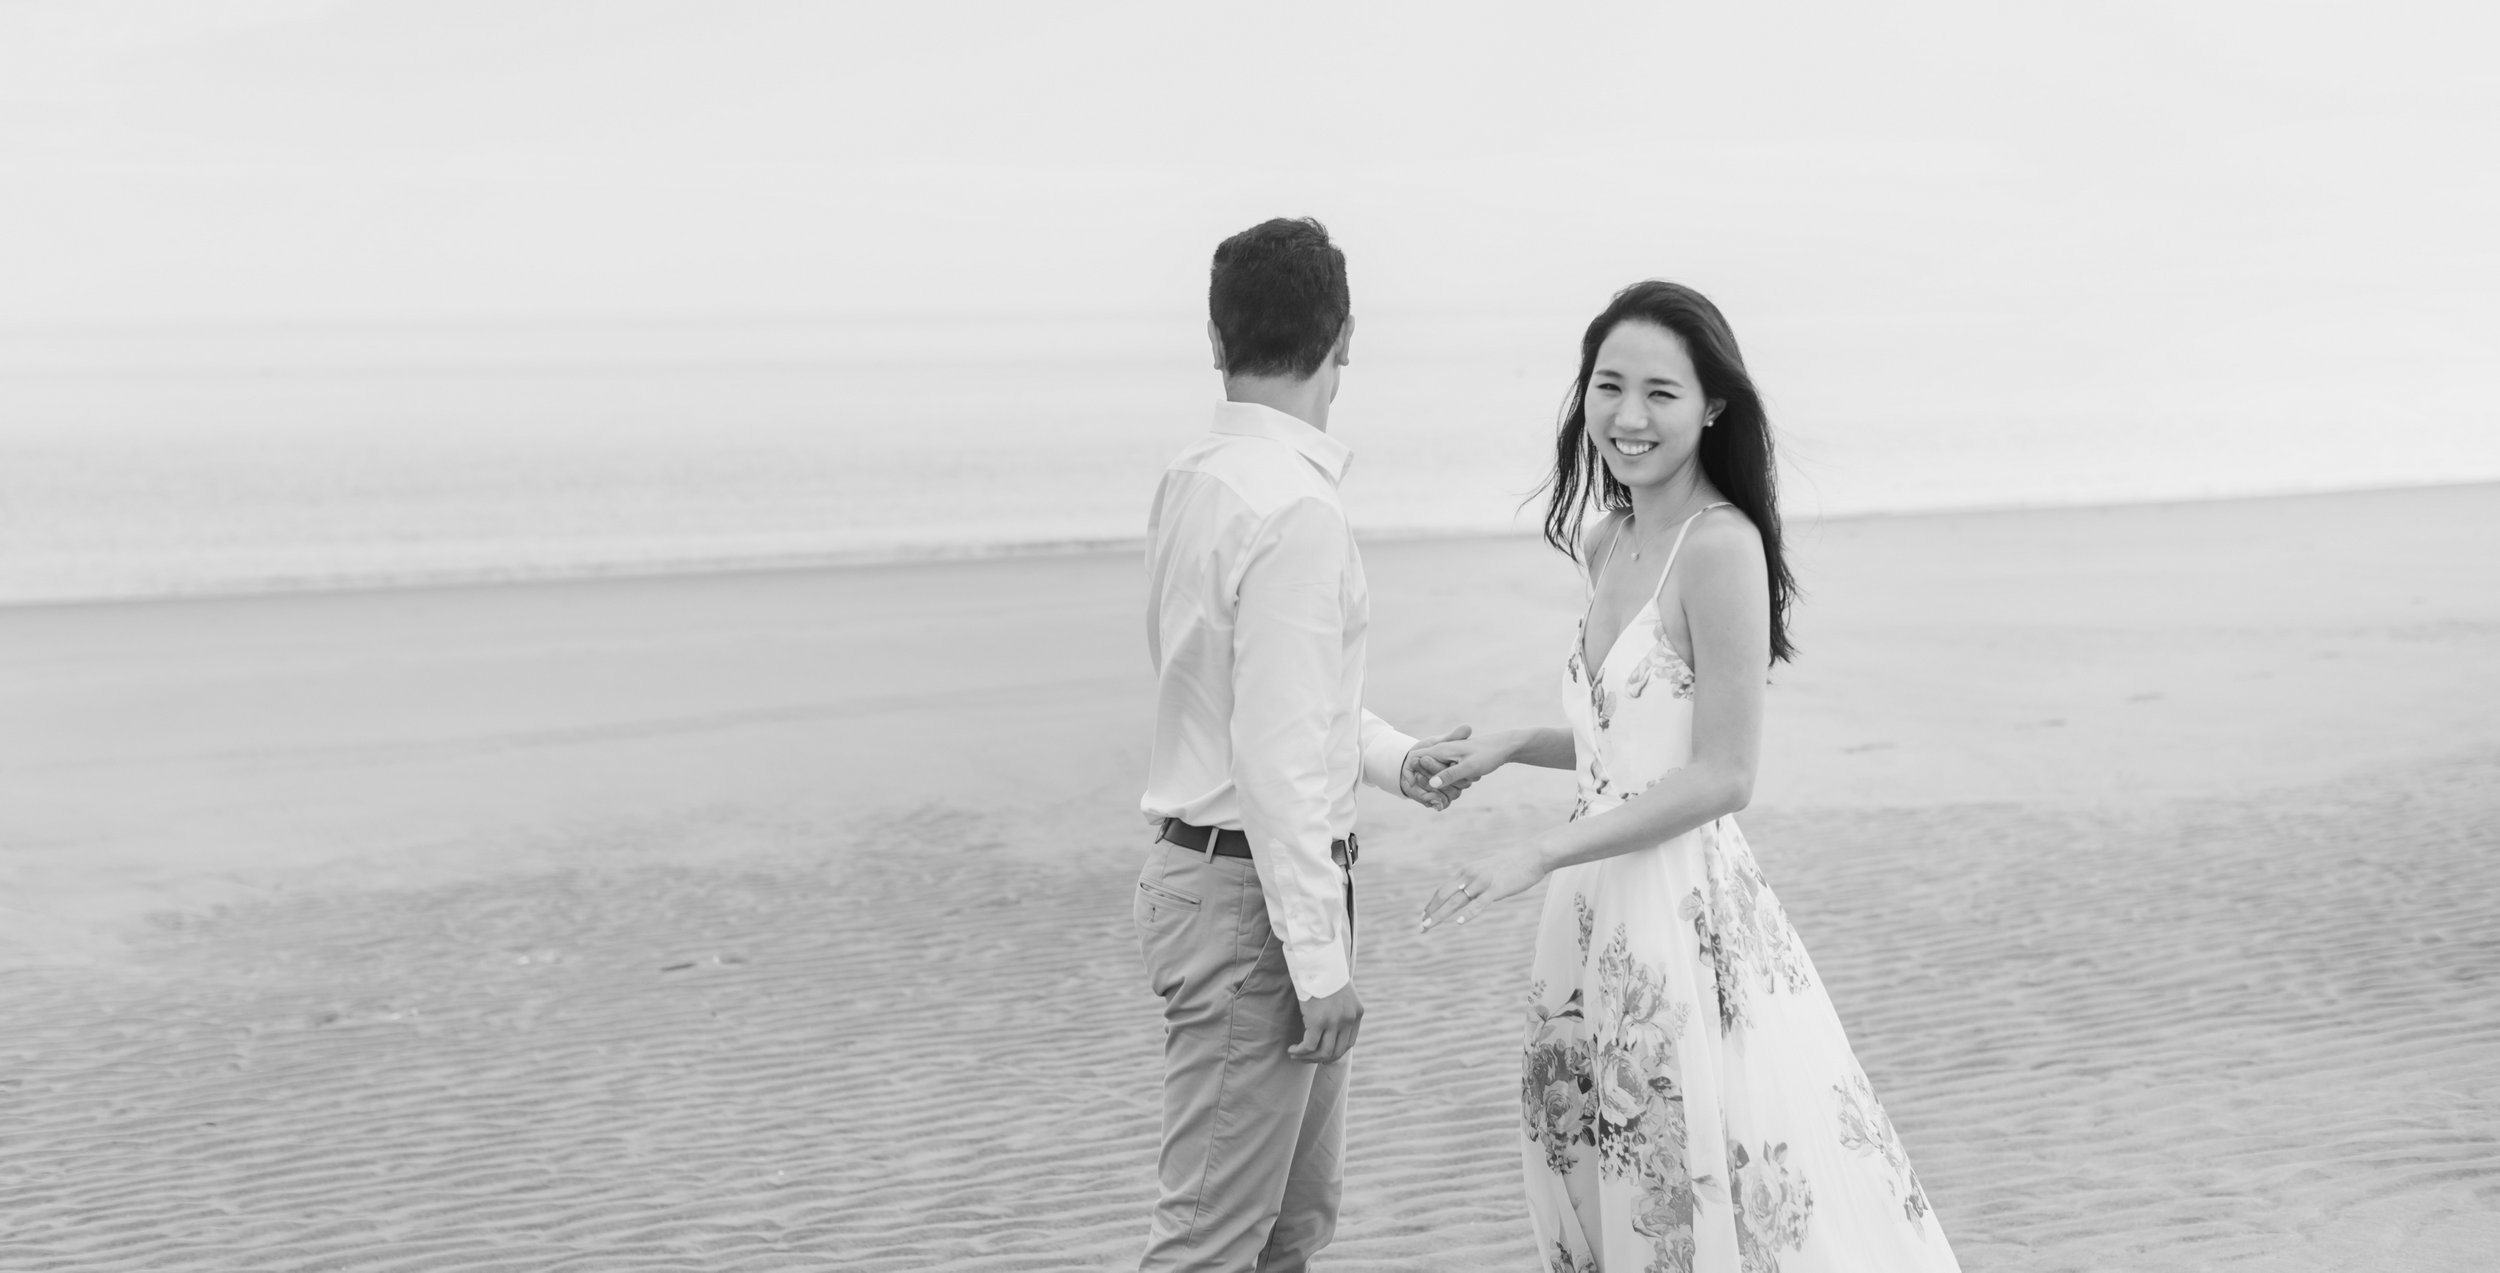 Crane-Beach-Engagement-Wedding-Lena-Mirisola-8.JPG